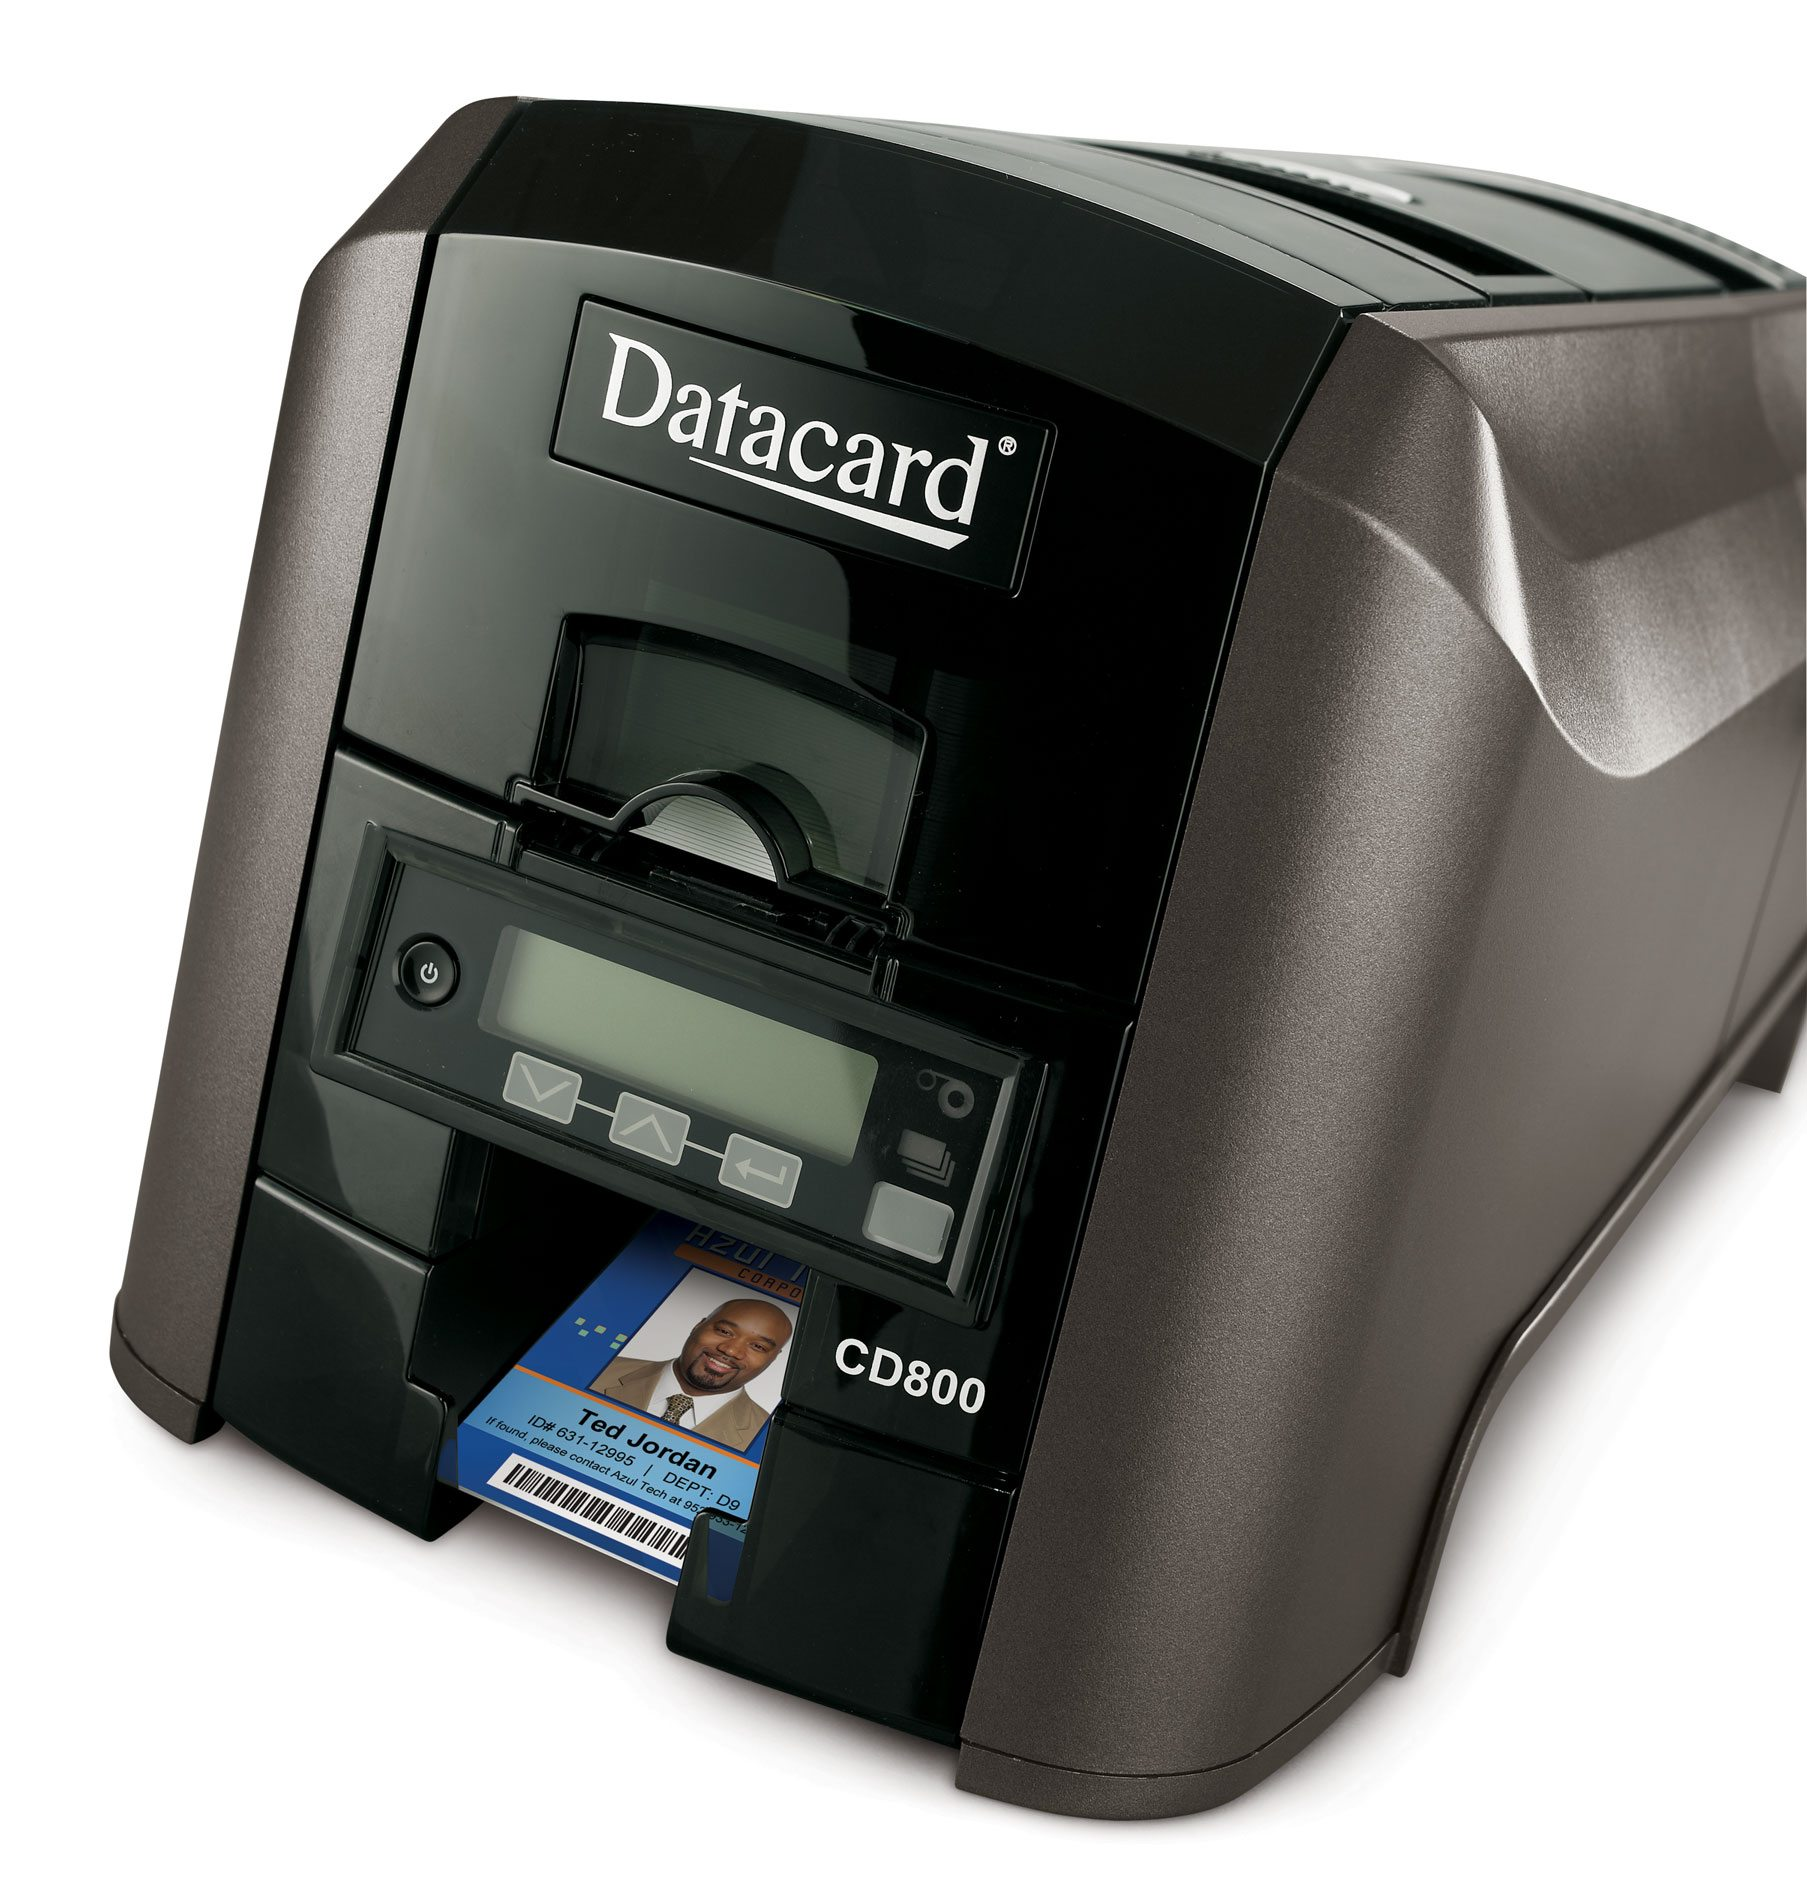 Card Issuance Printing with Datacard CD800